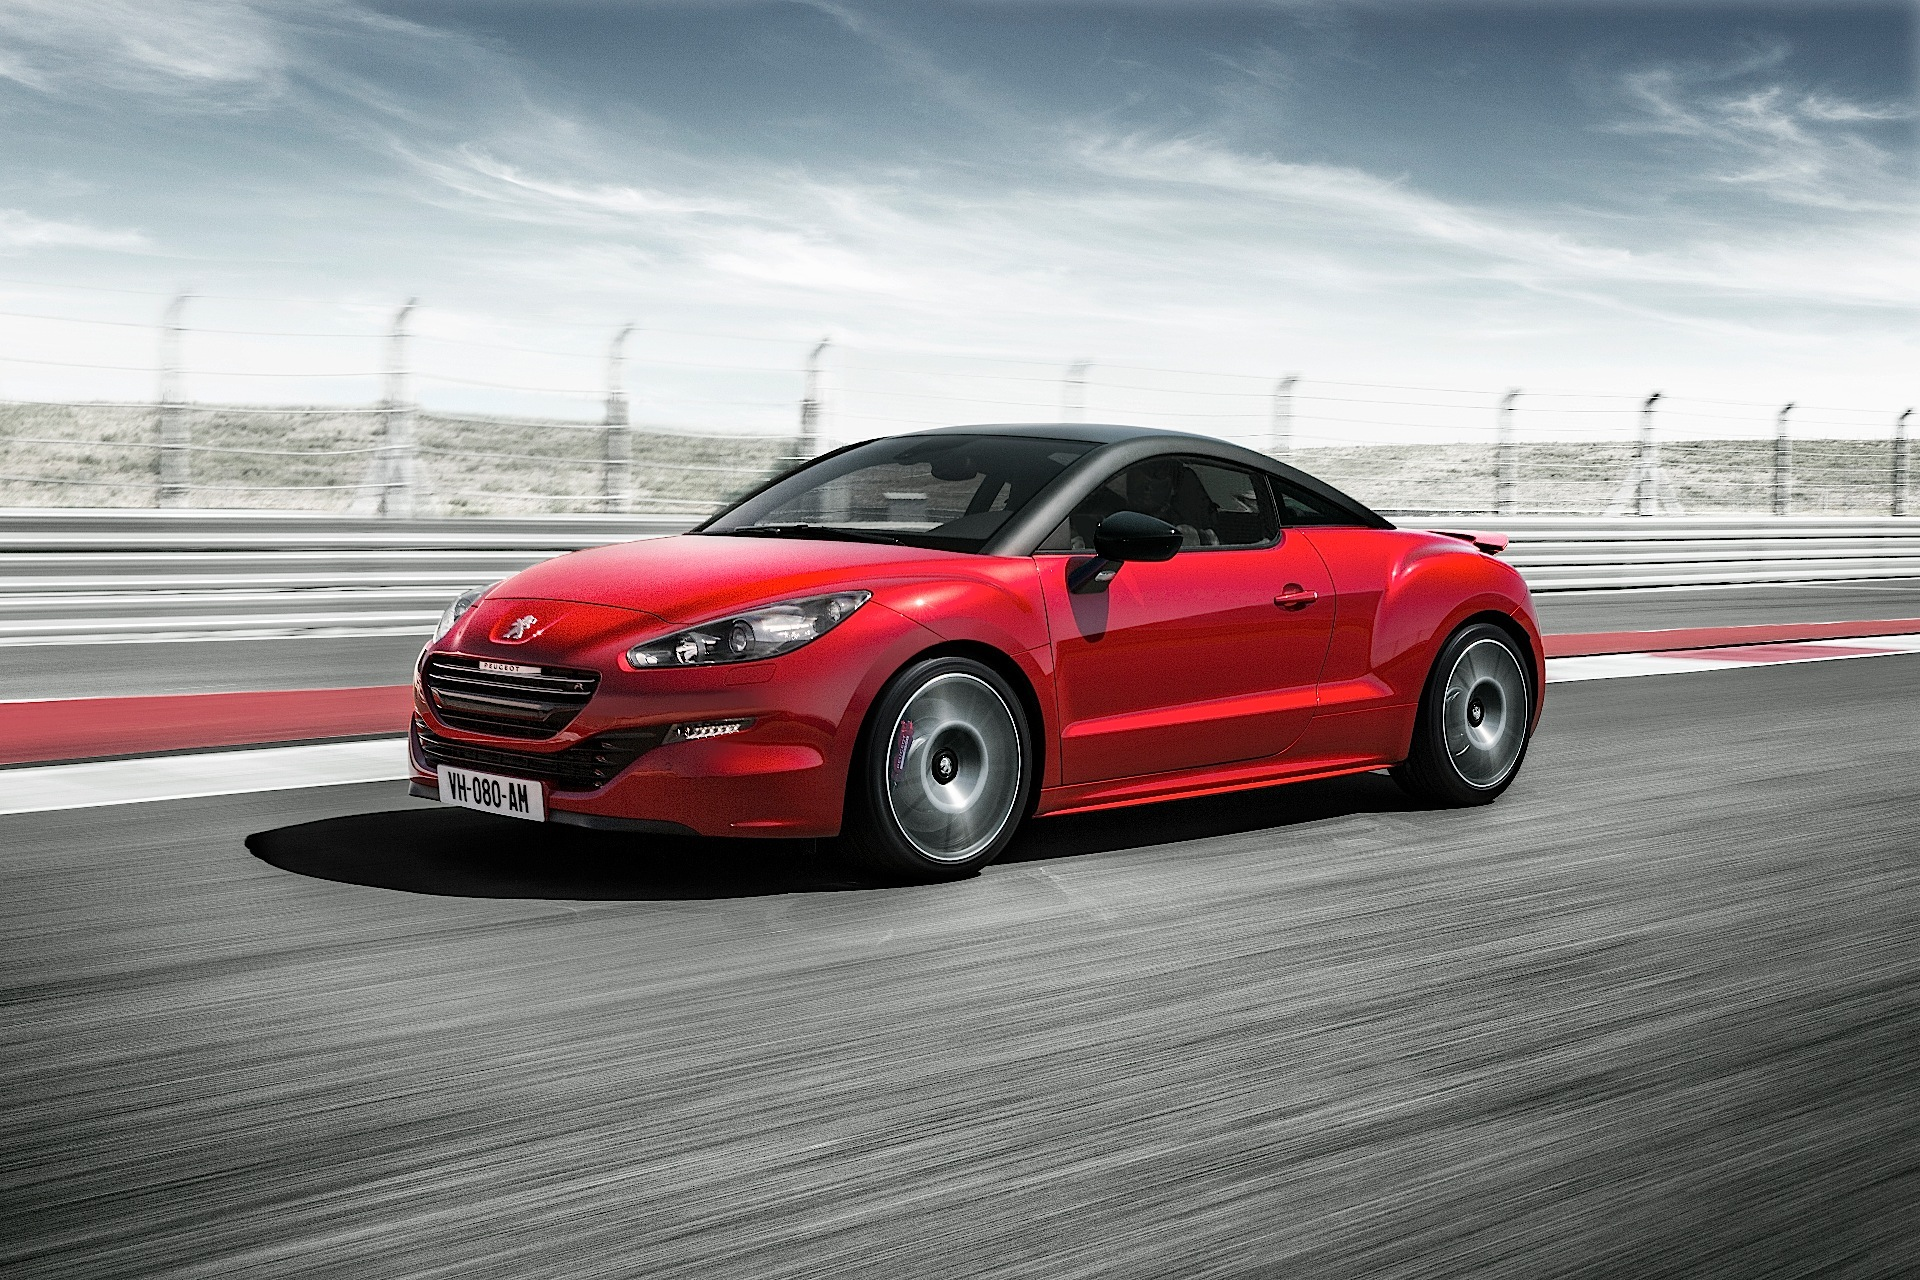 peugeot rcz r specs photos 2013 2014 2015 2016 2017 2018 2019 autoevolution. Black Bedroom Furniture Sets. Home Design Ideas